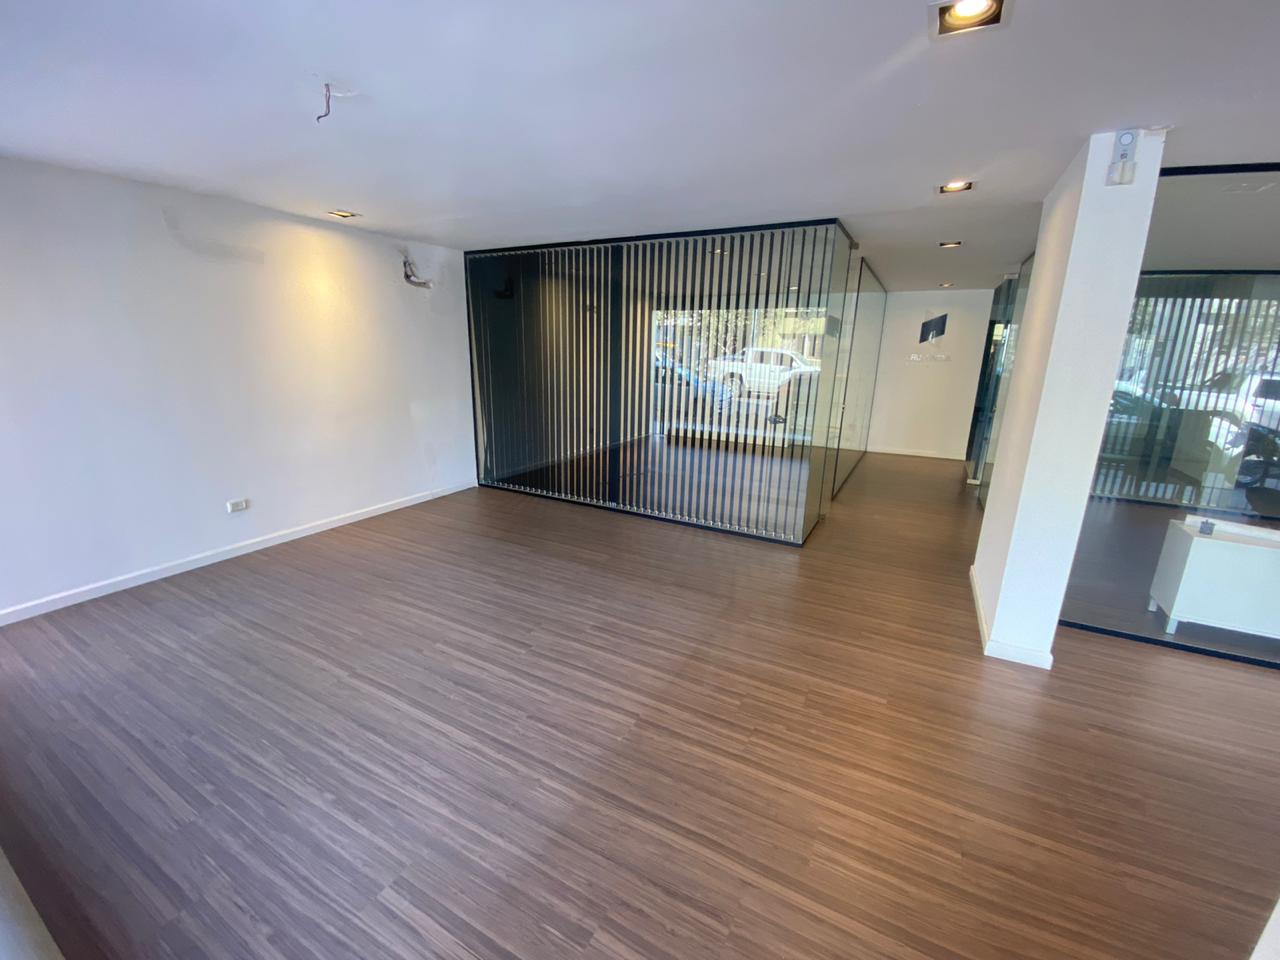 Alquiler – Impecable local comercial en Barrio General Paz!